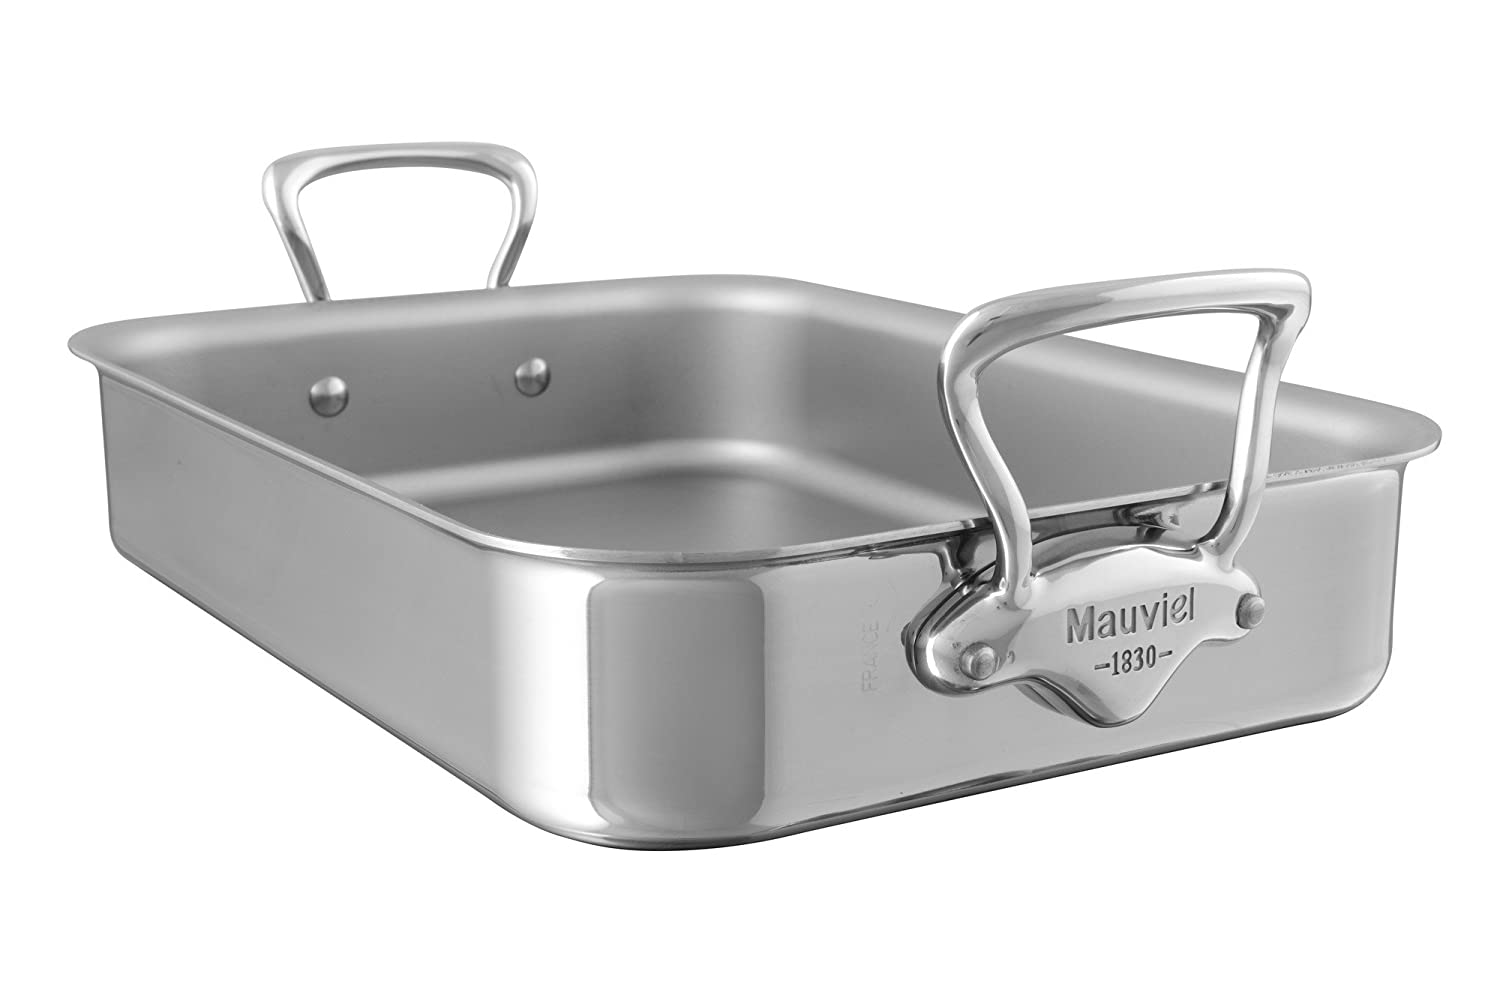 Mauviel 30 x 22 x 6 cm M'Cook Stainless Steel Roasting Dish 35521730